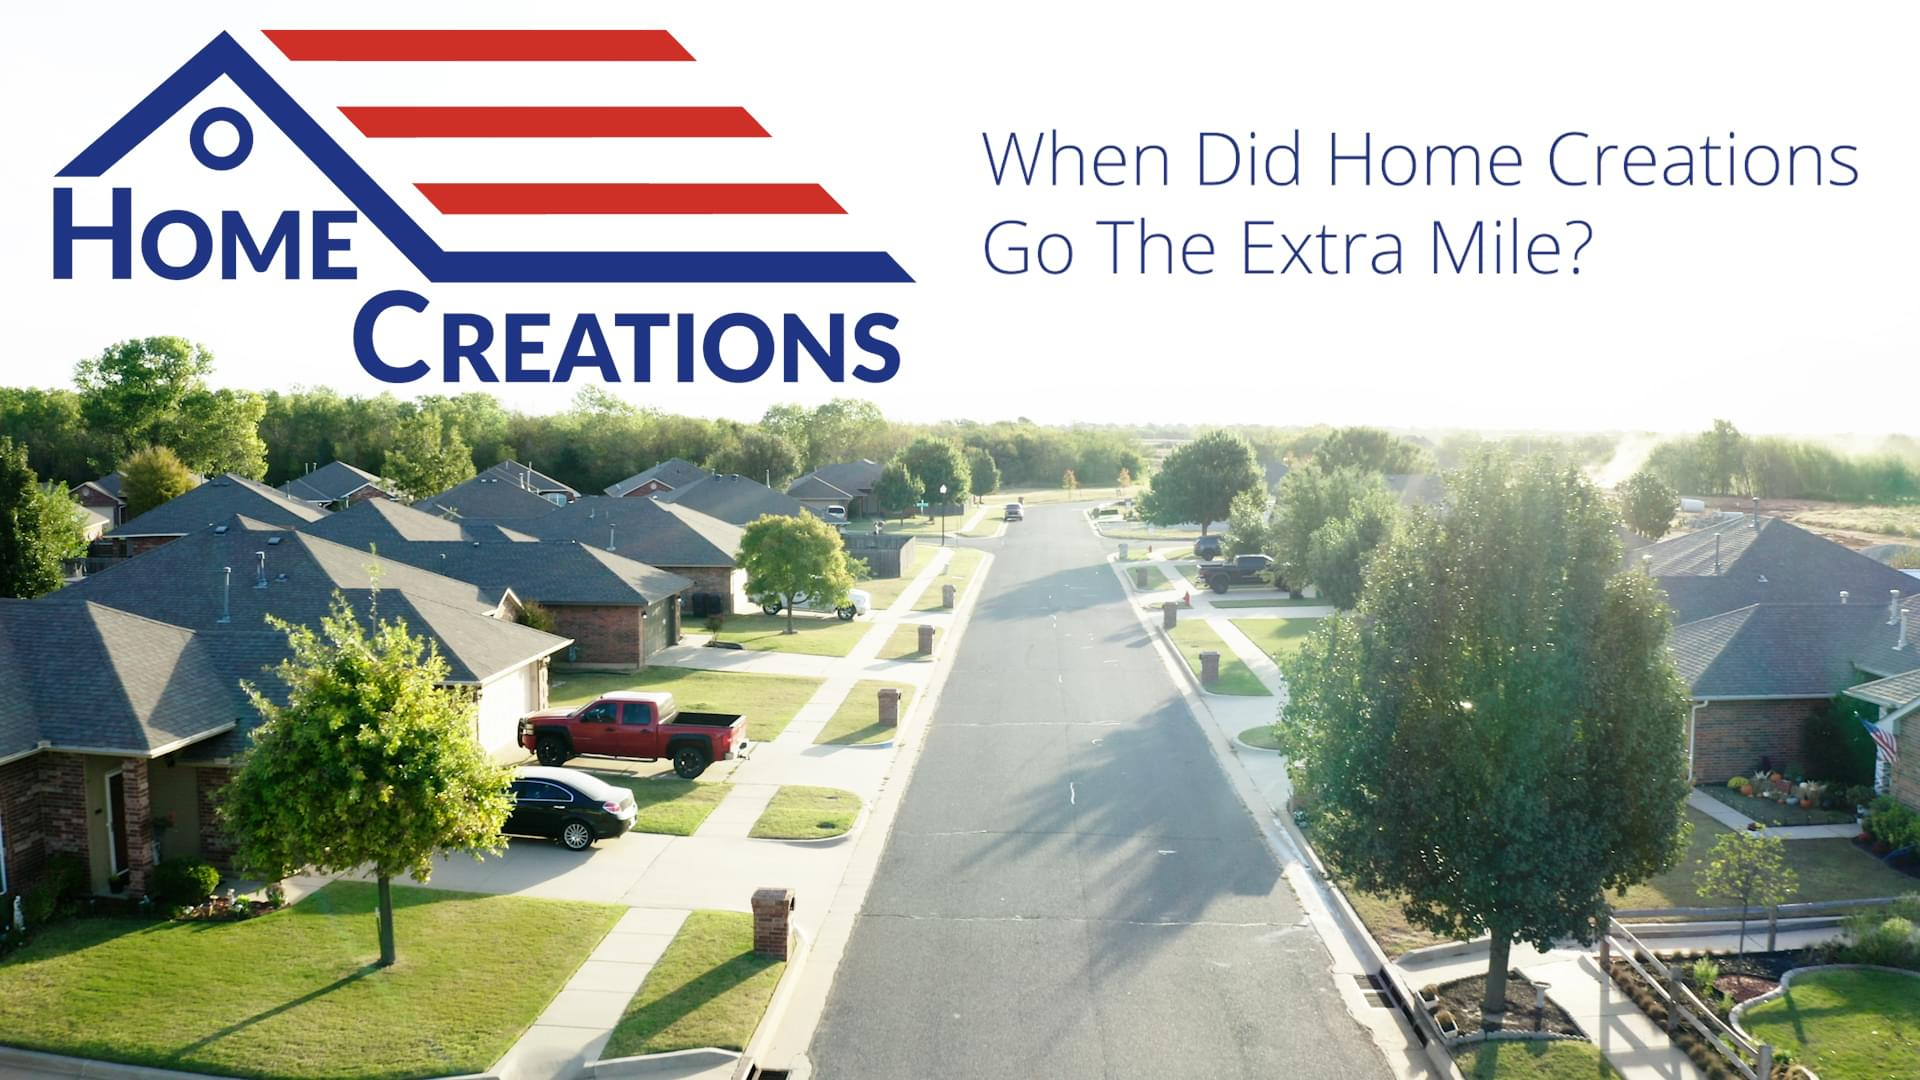 When did we go the extra mile?